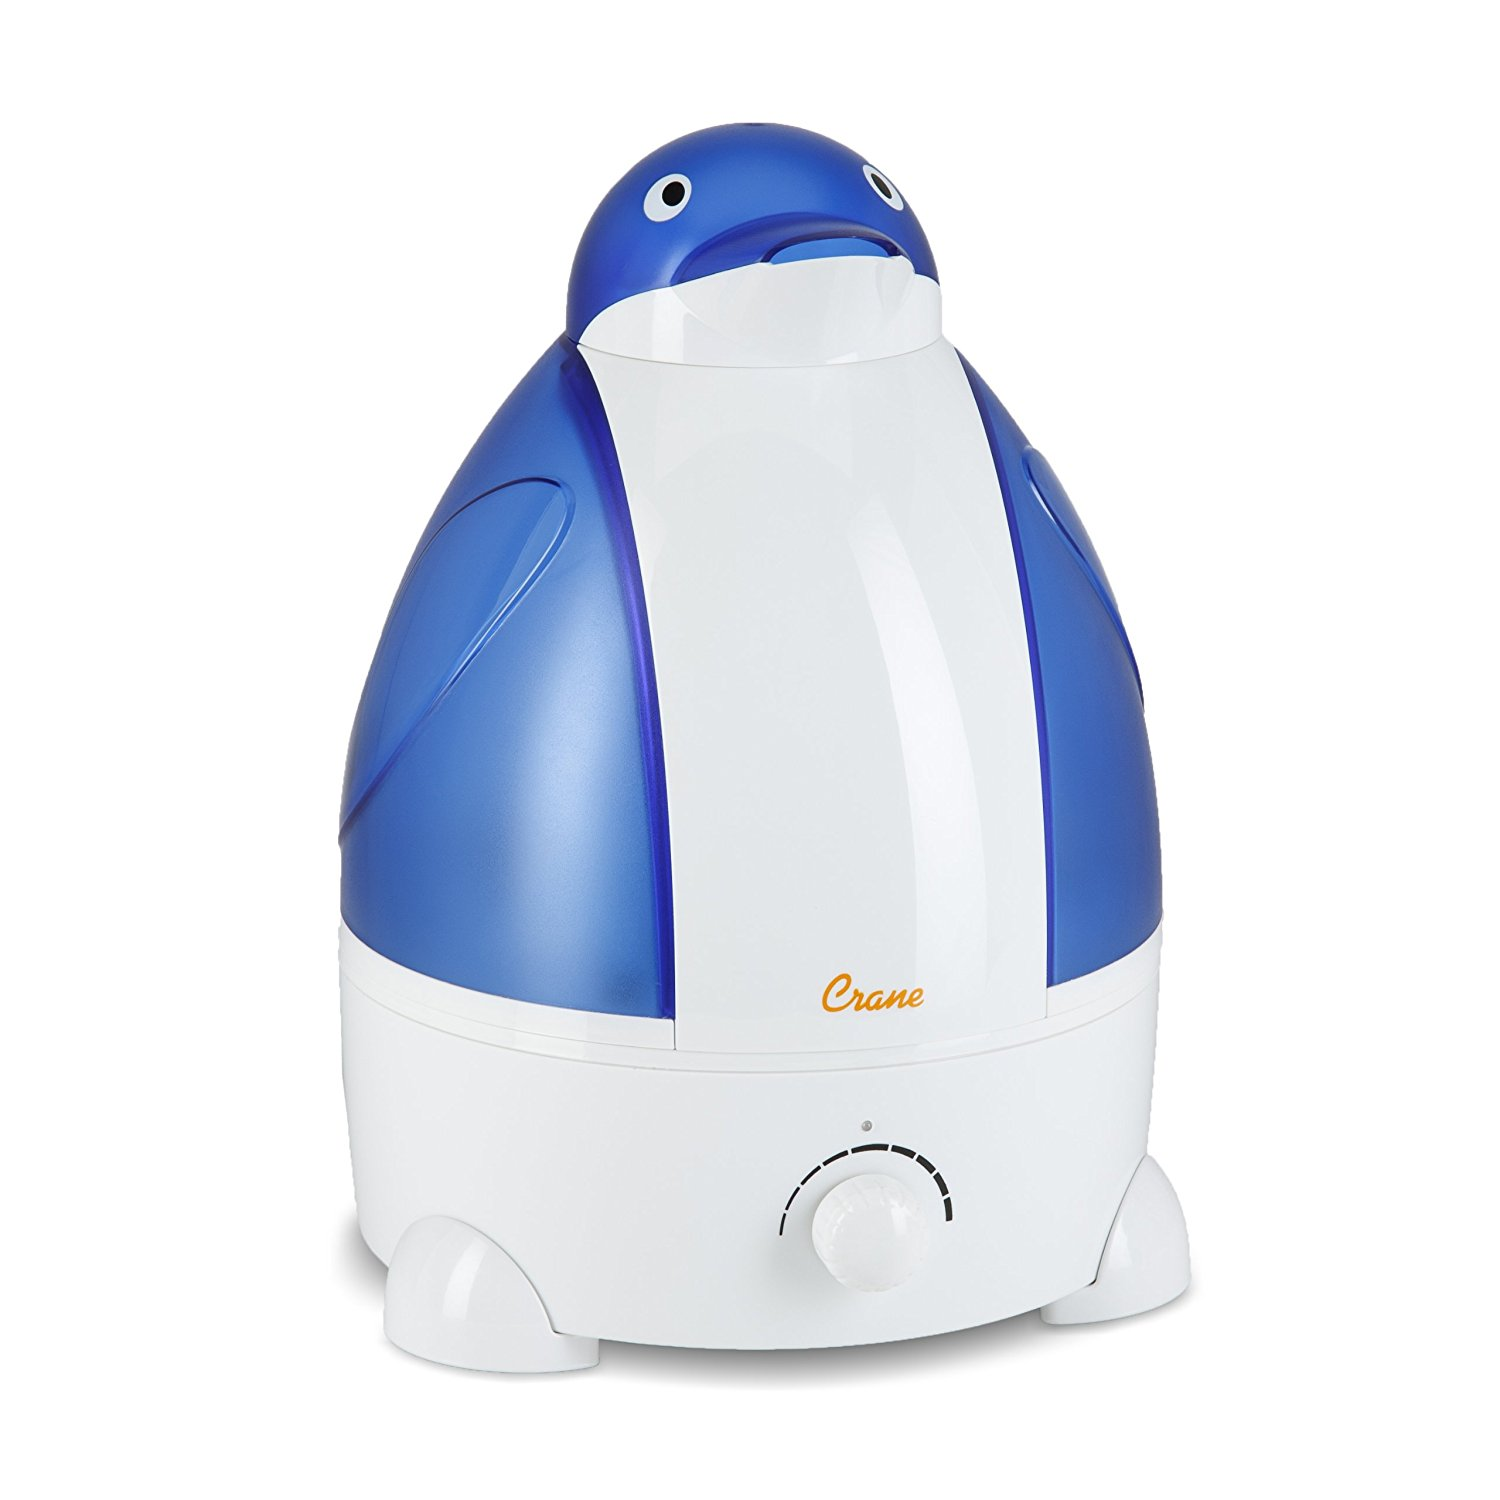 crane penguin ultrasonic humidifier, cool mist humidifier, best humidifier for baby, humidifier for baby